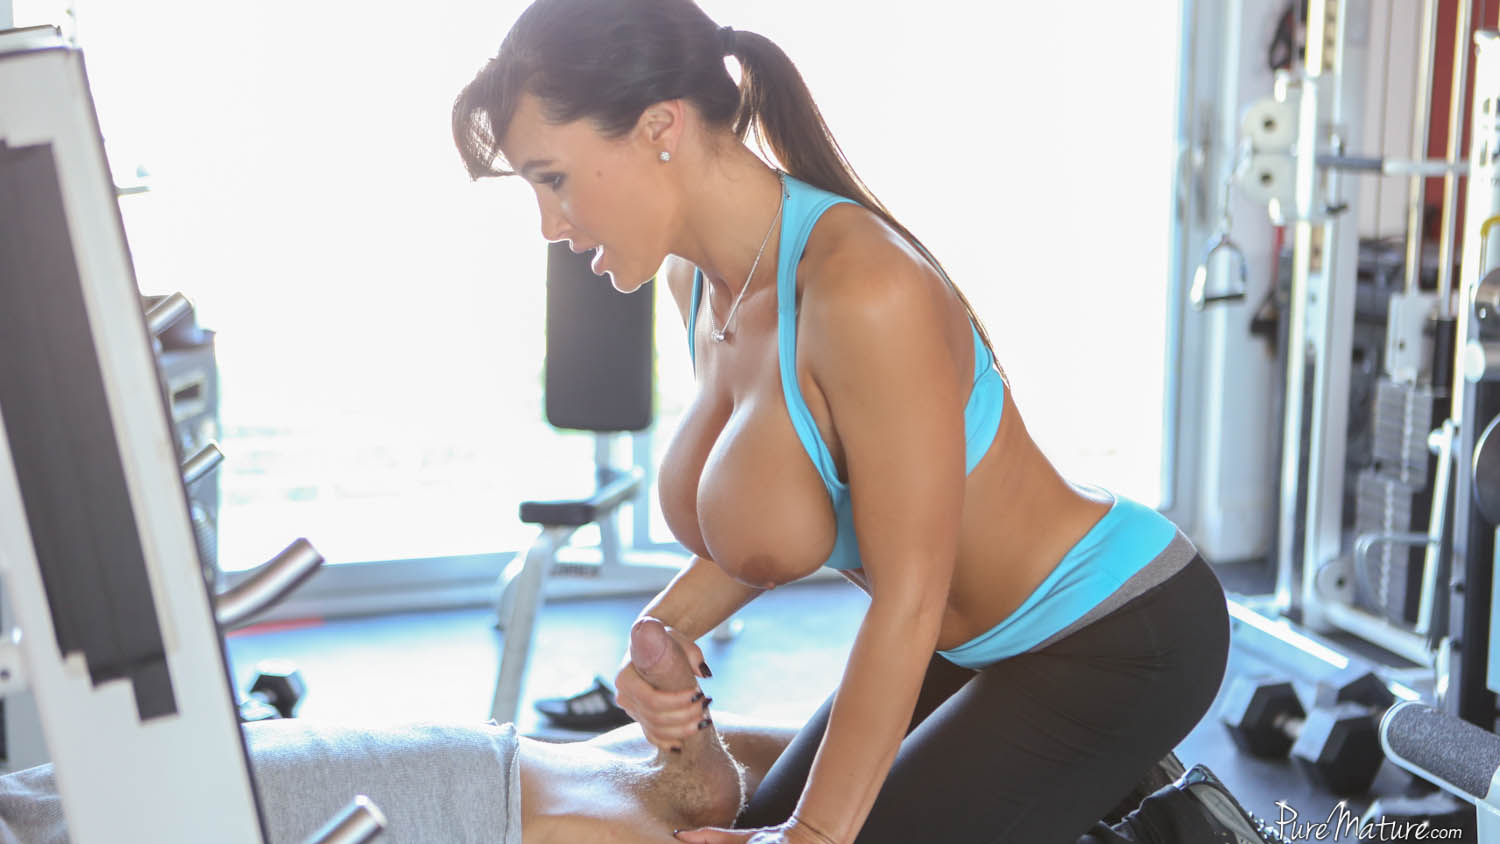 image Mature gym fuck first time puppy love